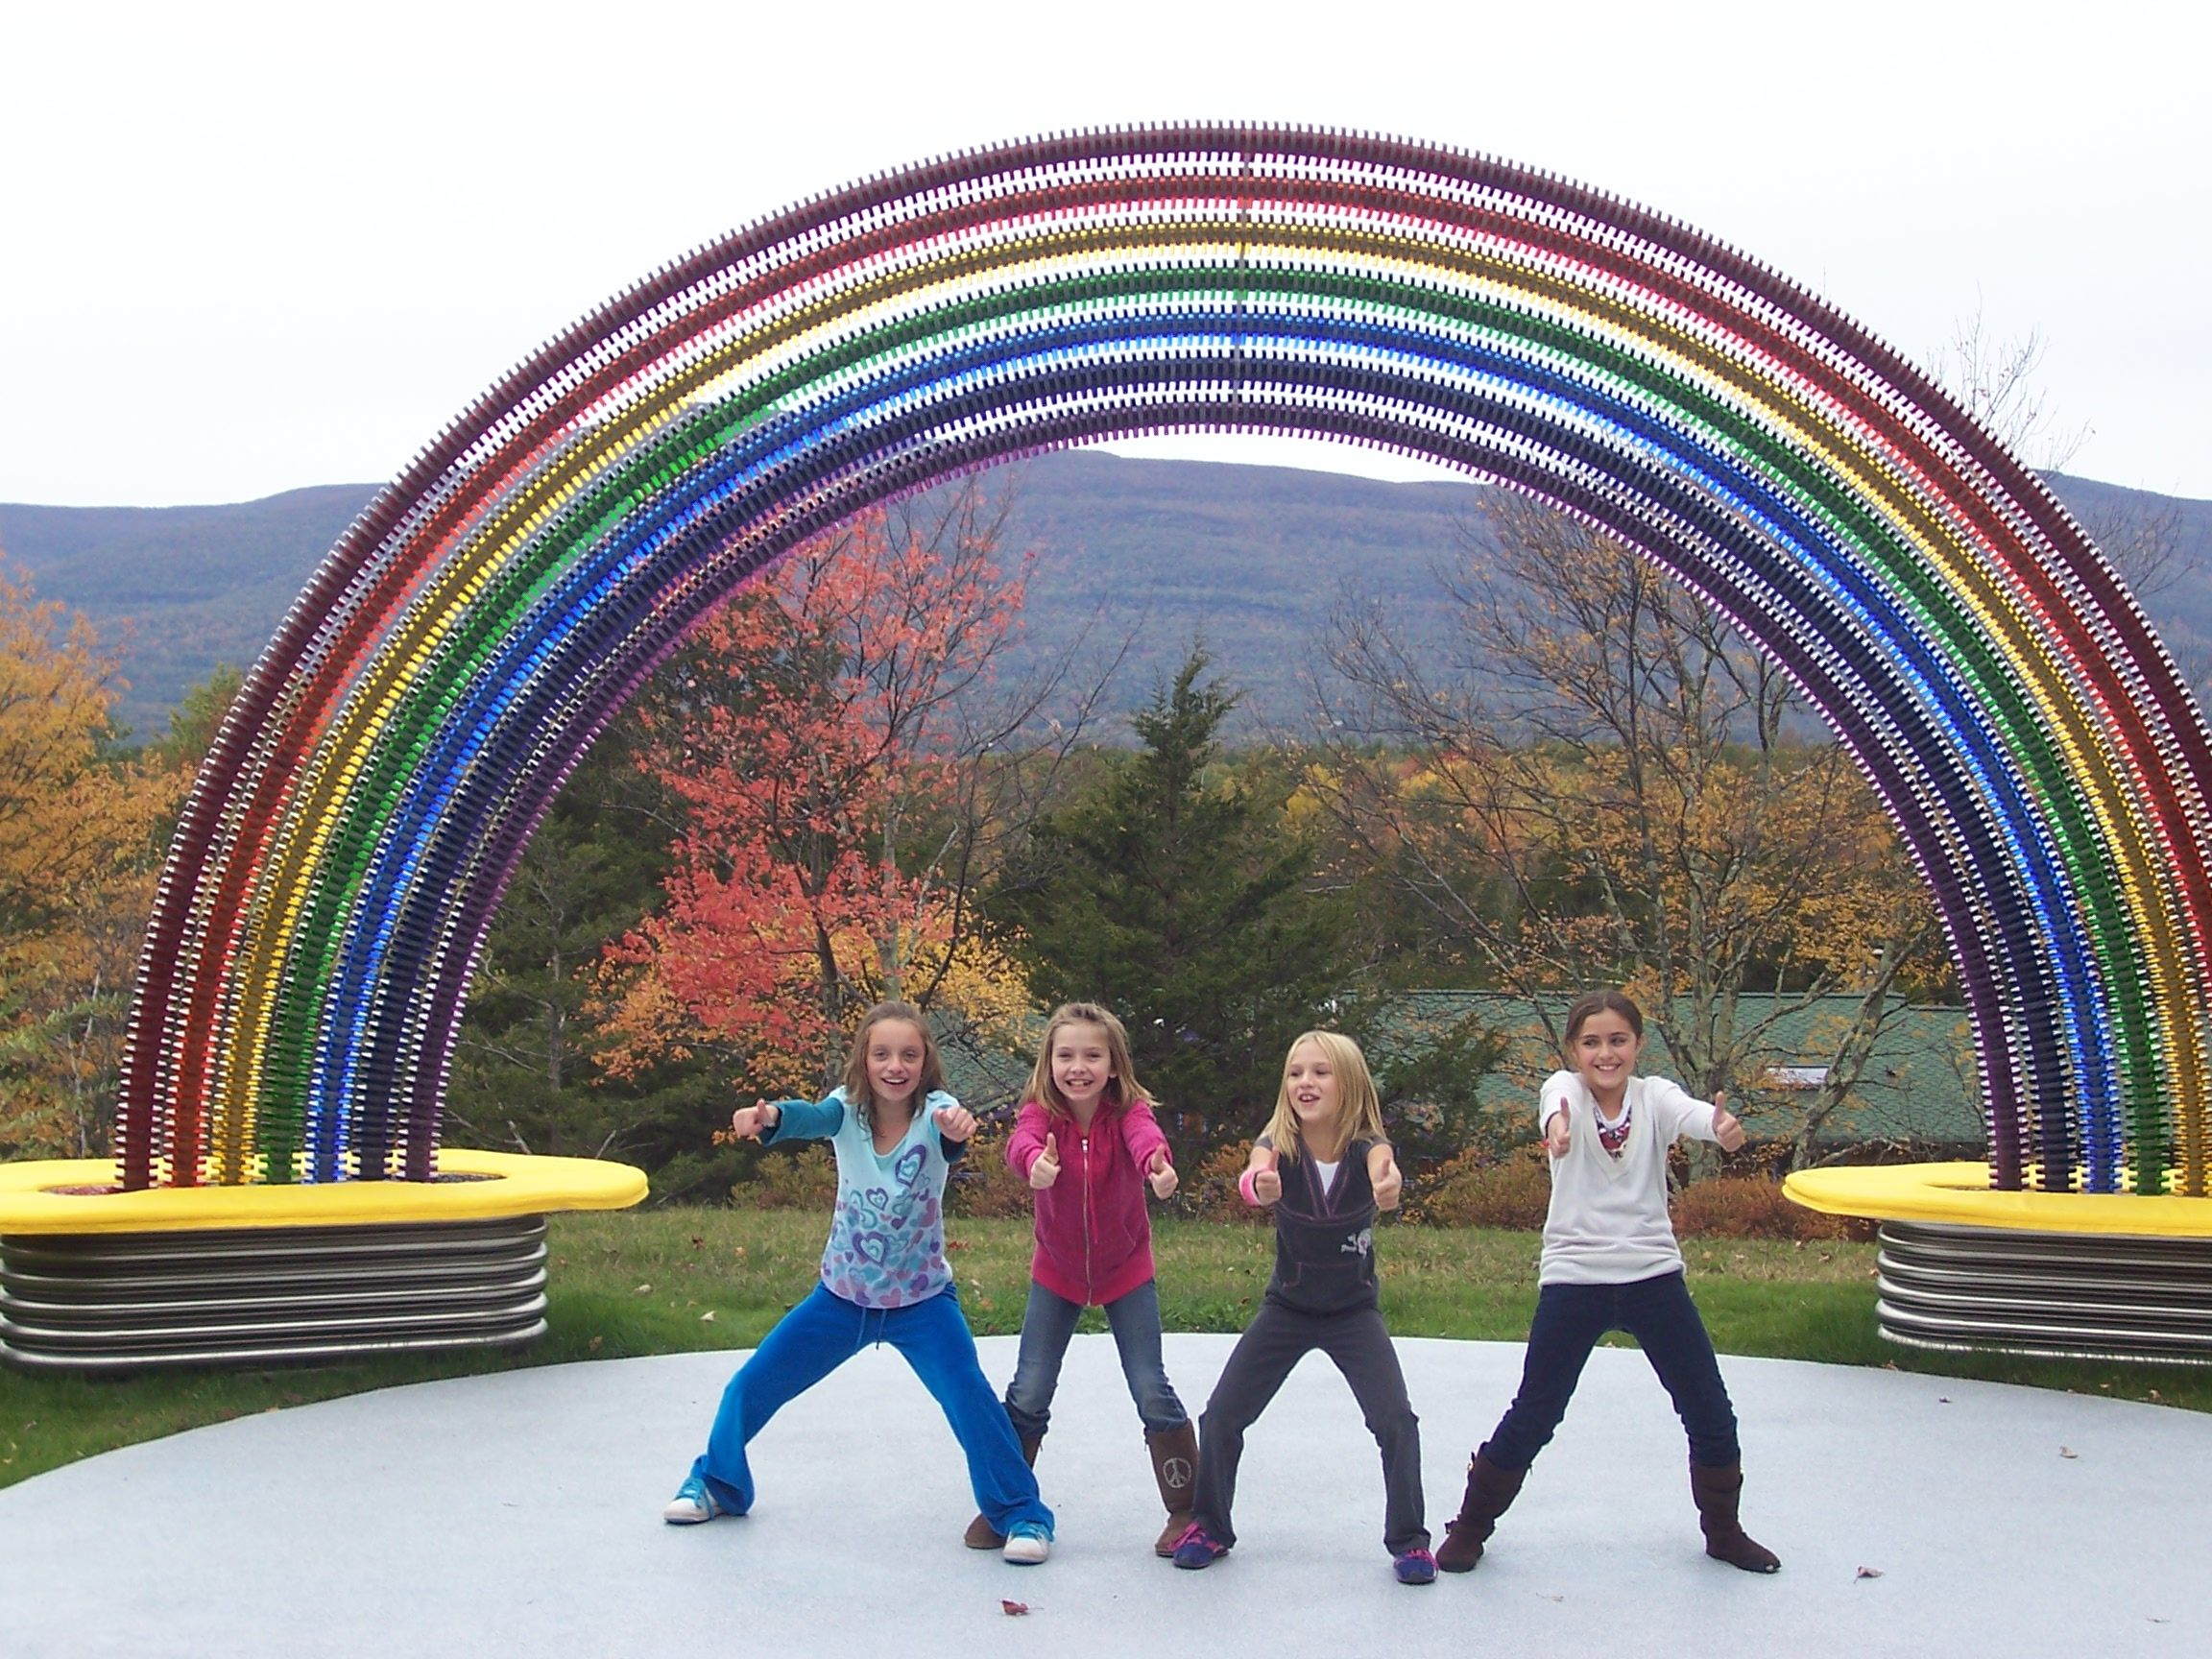 Children giving thumbs up in front of the rainbow sculpture at Tischler Dental